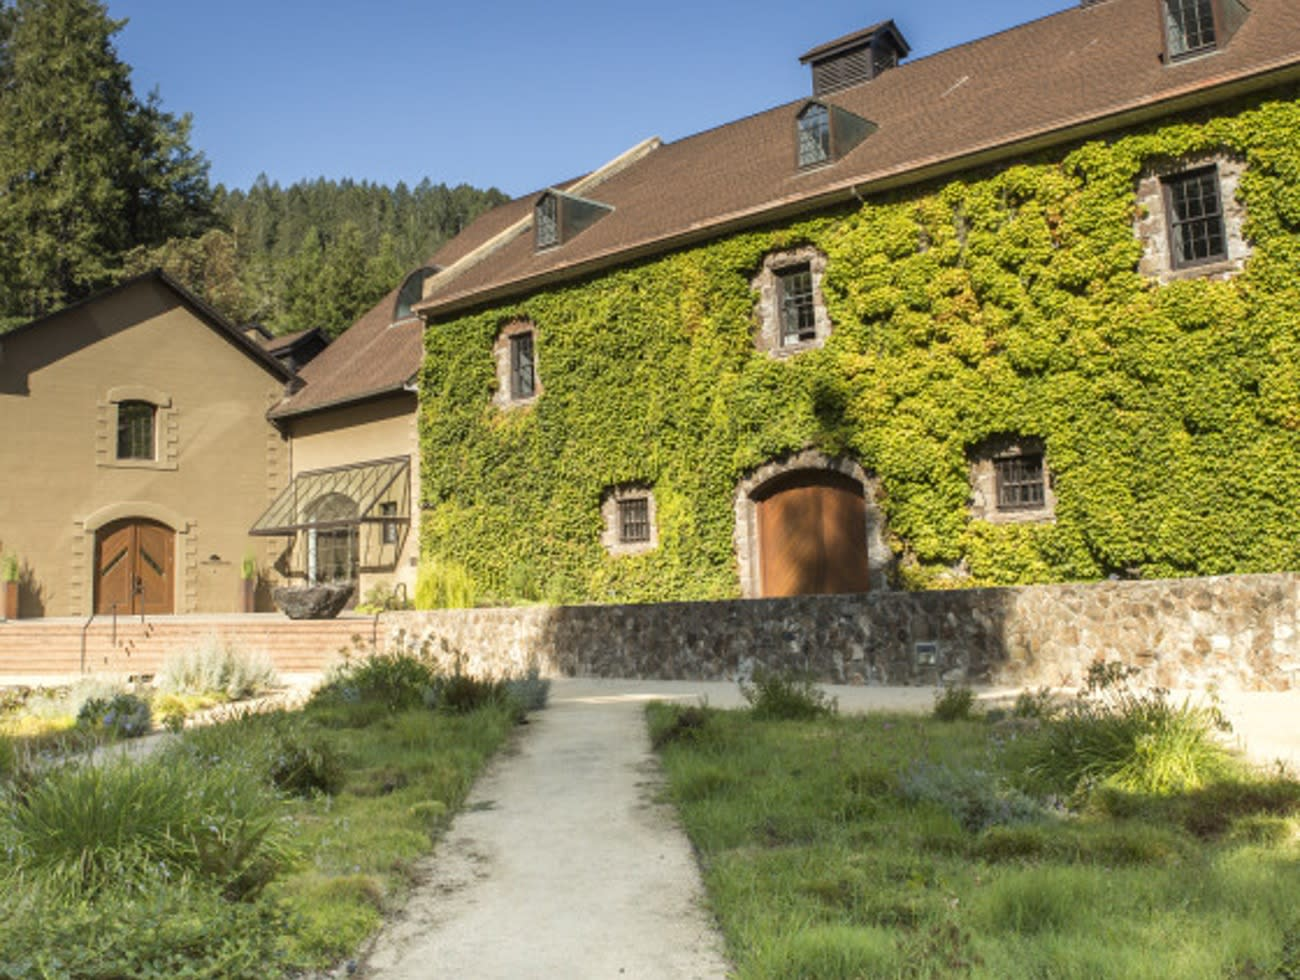 Hess Winery and Art Collection in Napa Valley